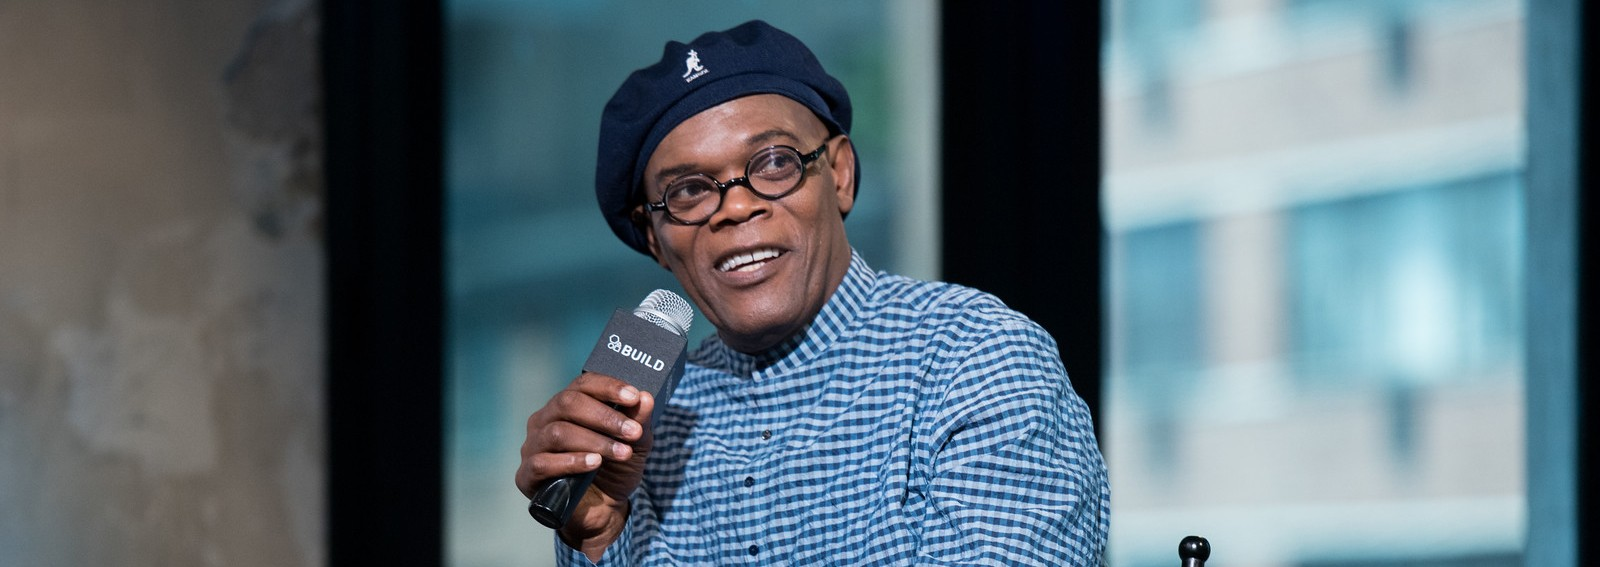 Samuel L. Jackson opens up about his 'Legend of Tarzan' character